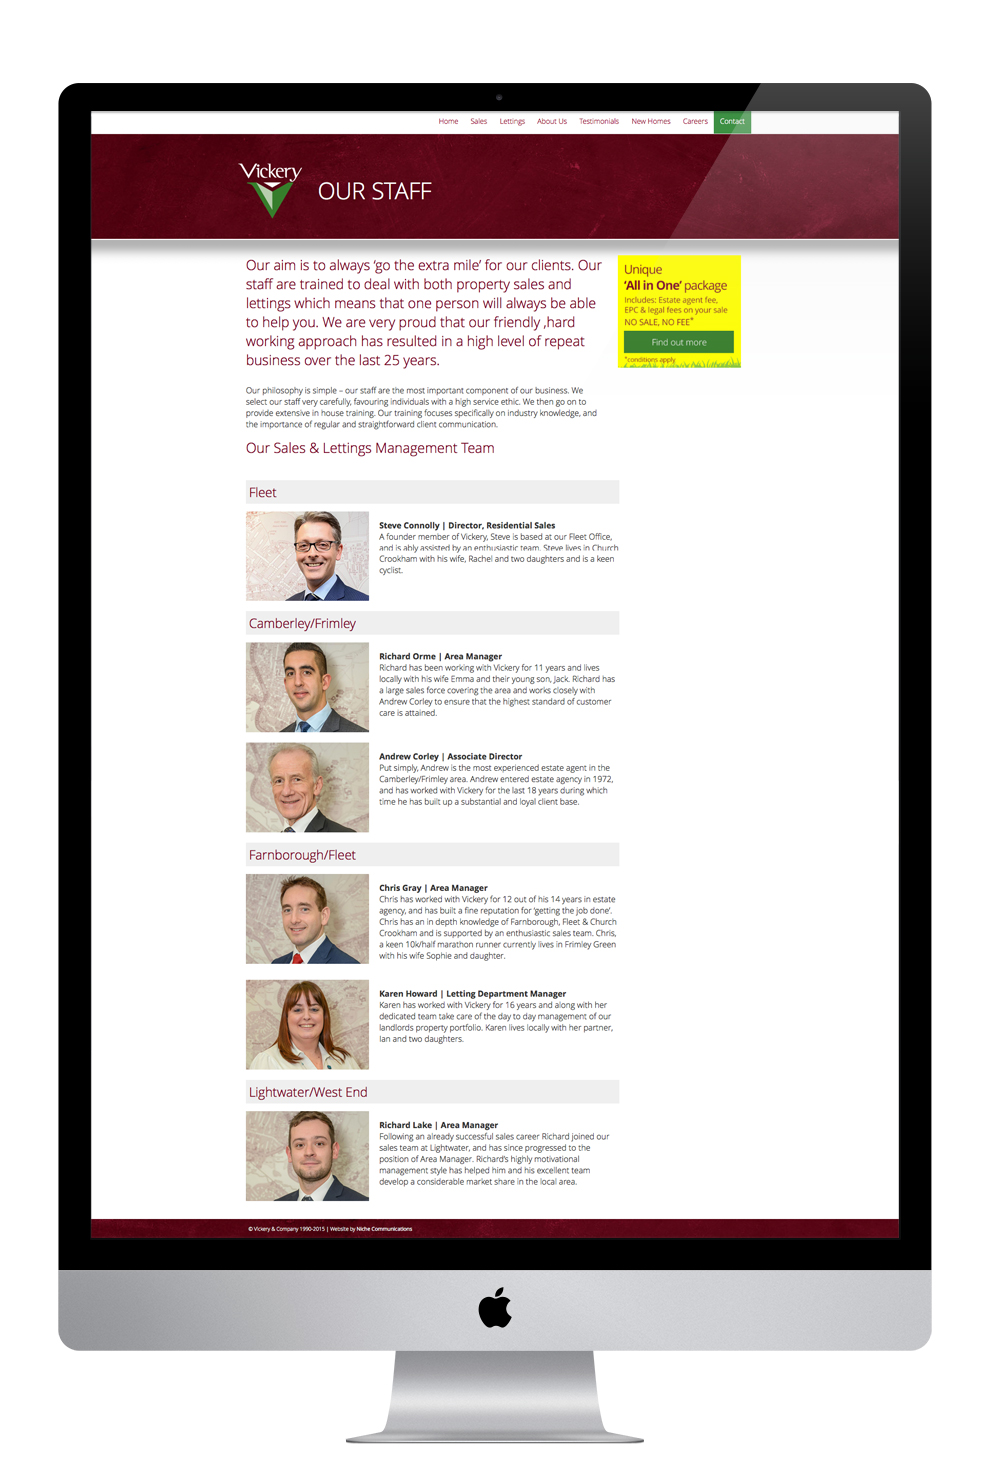 Full page view of the team - photography taken specifically for the site as well.